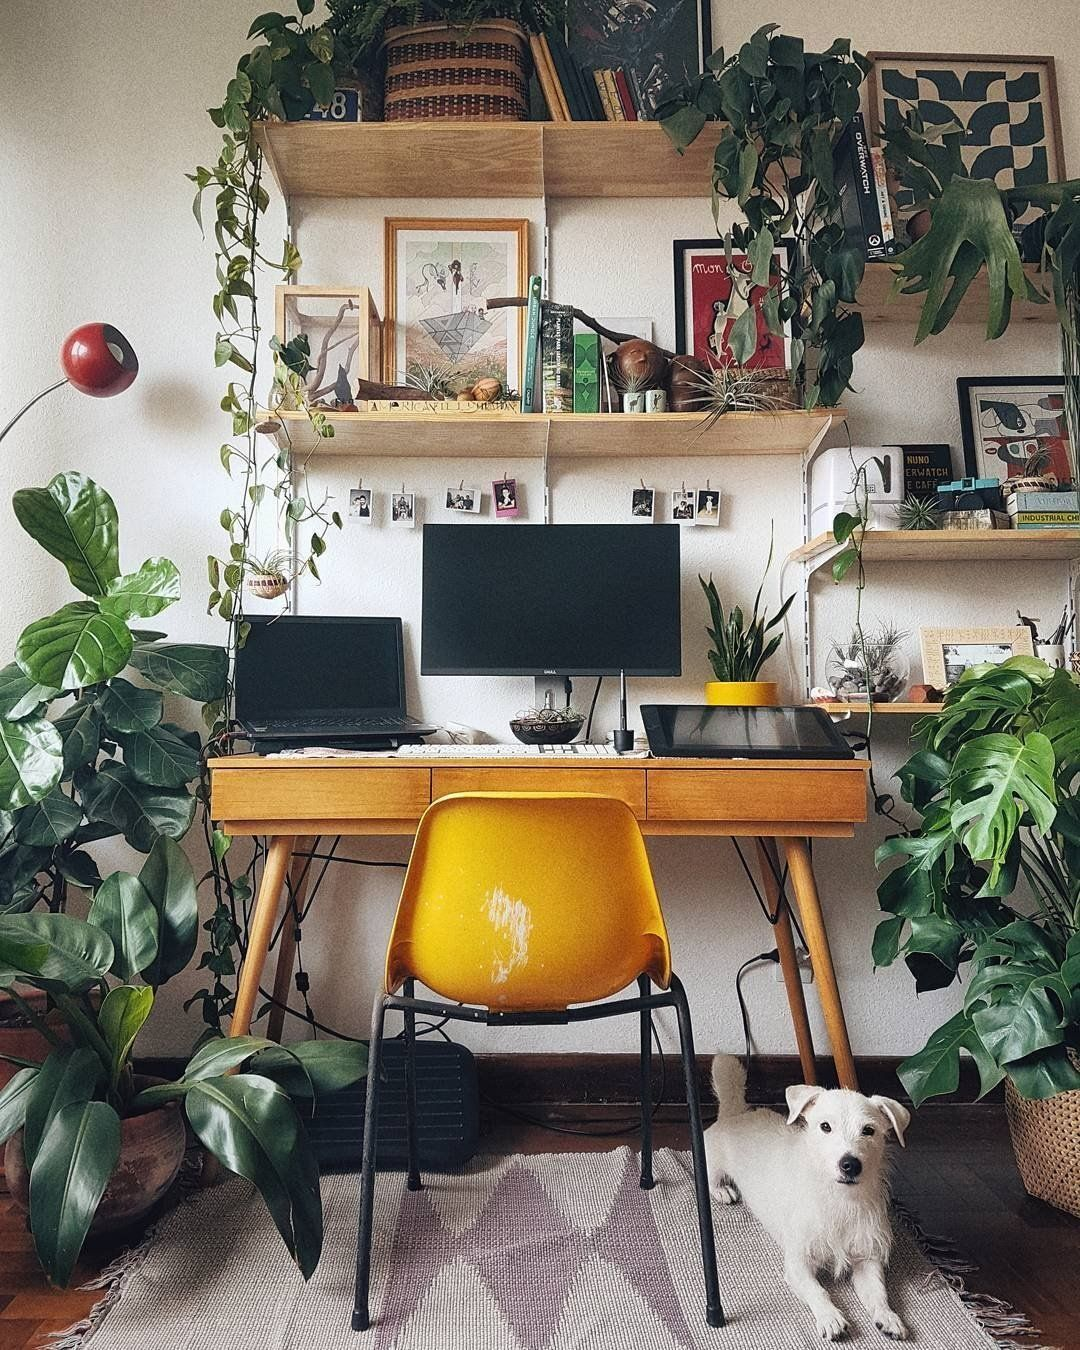 Rejuvenate Your Workspace With Plants And More Plants! Our